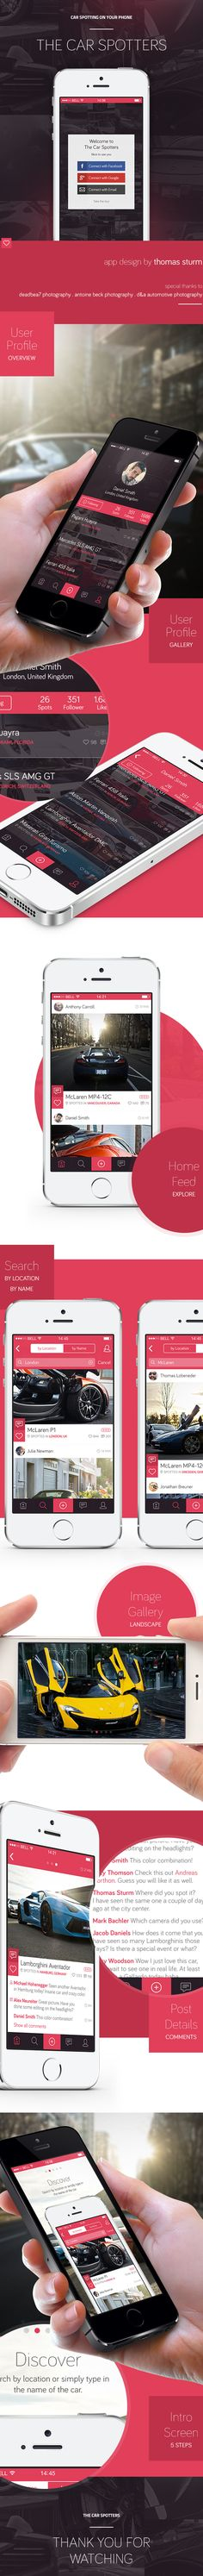 A nice #FlatDesign of a car-spotting app. We're waiting for it to be developed, preferably in five minutes, before that sweet Gallardo vanishes from our sight forever.